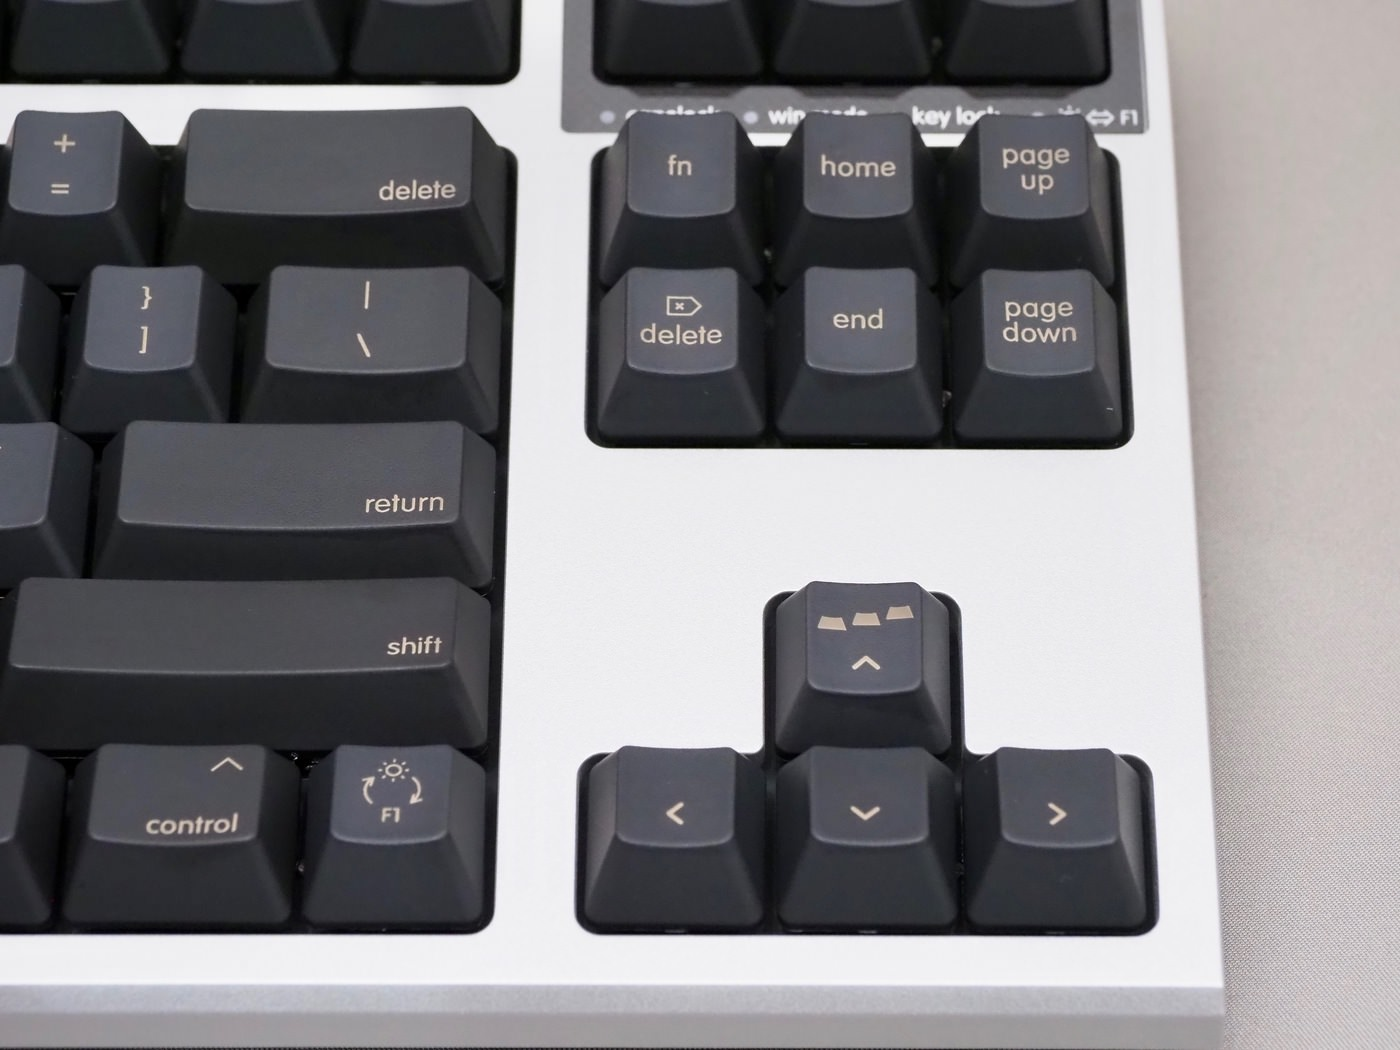 realforce-tkl-for-mac-pfu-limited-edition-review_00035-1